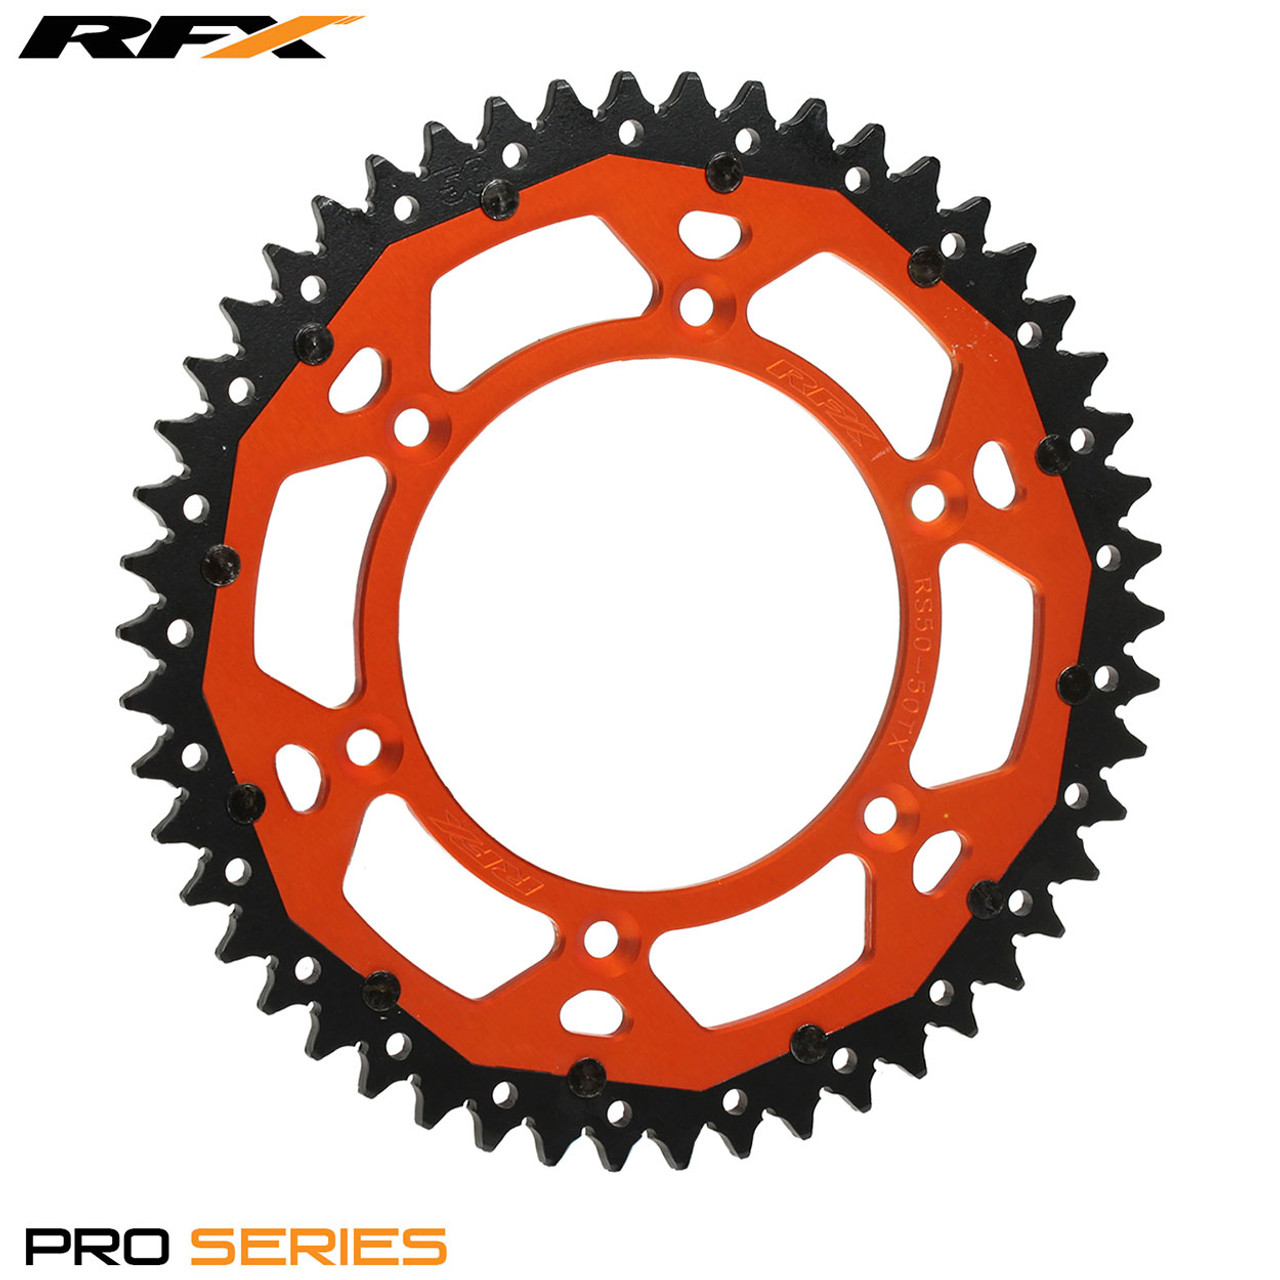 RFX Race Front Sprocket Husaberg FE//FC 390-450 09-14 13 Tooth